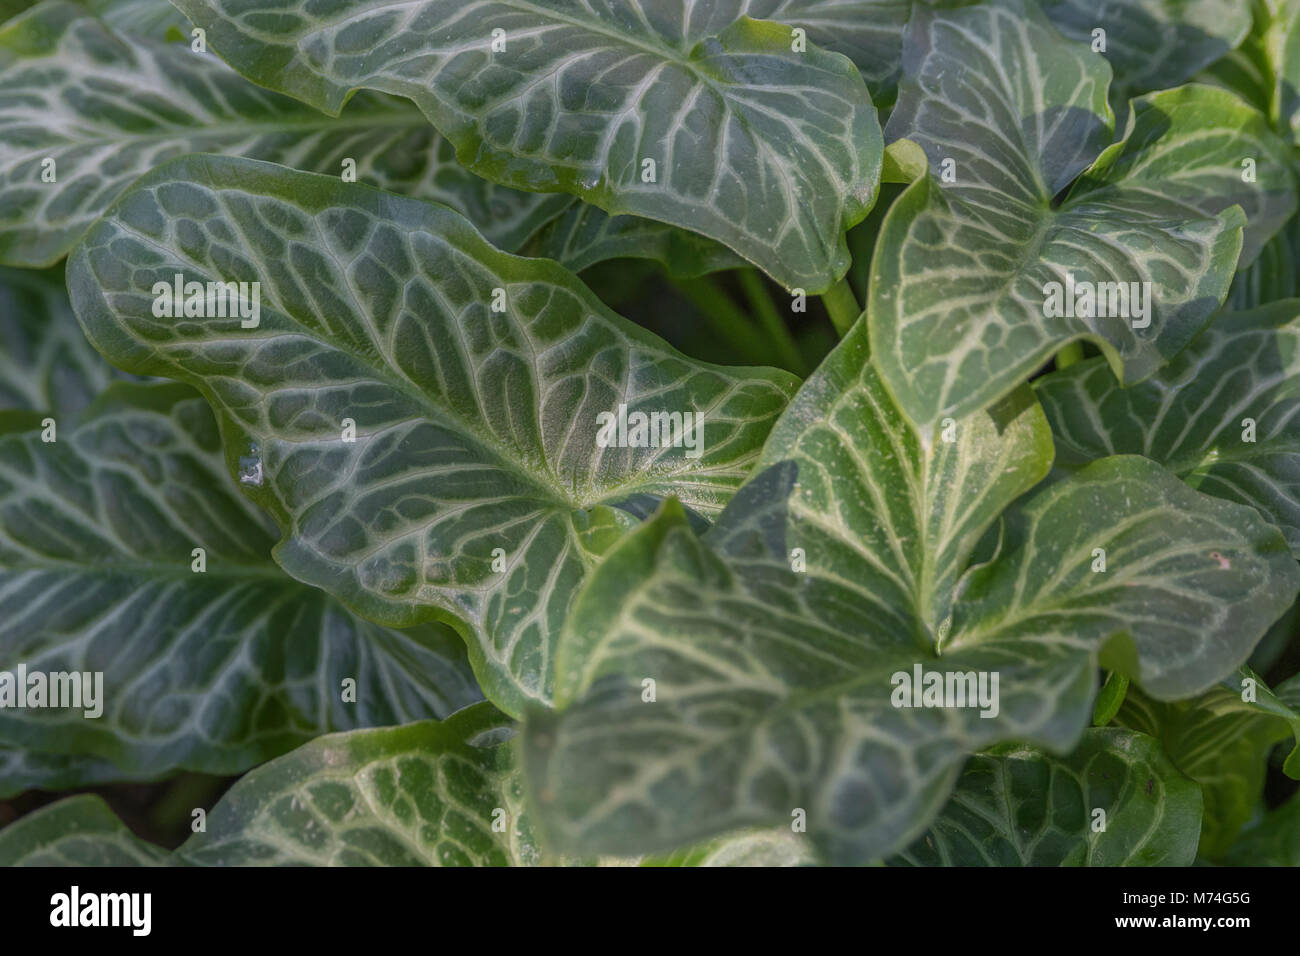 Variegated leaves / foliage of Arum italicum - Italian Lords and Ladies - a woodland and shade plant, and a relative - Stock Image